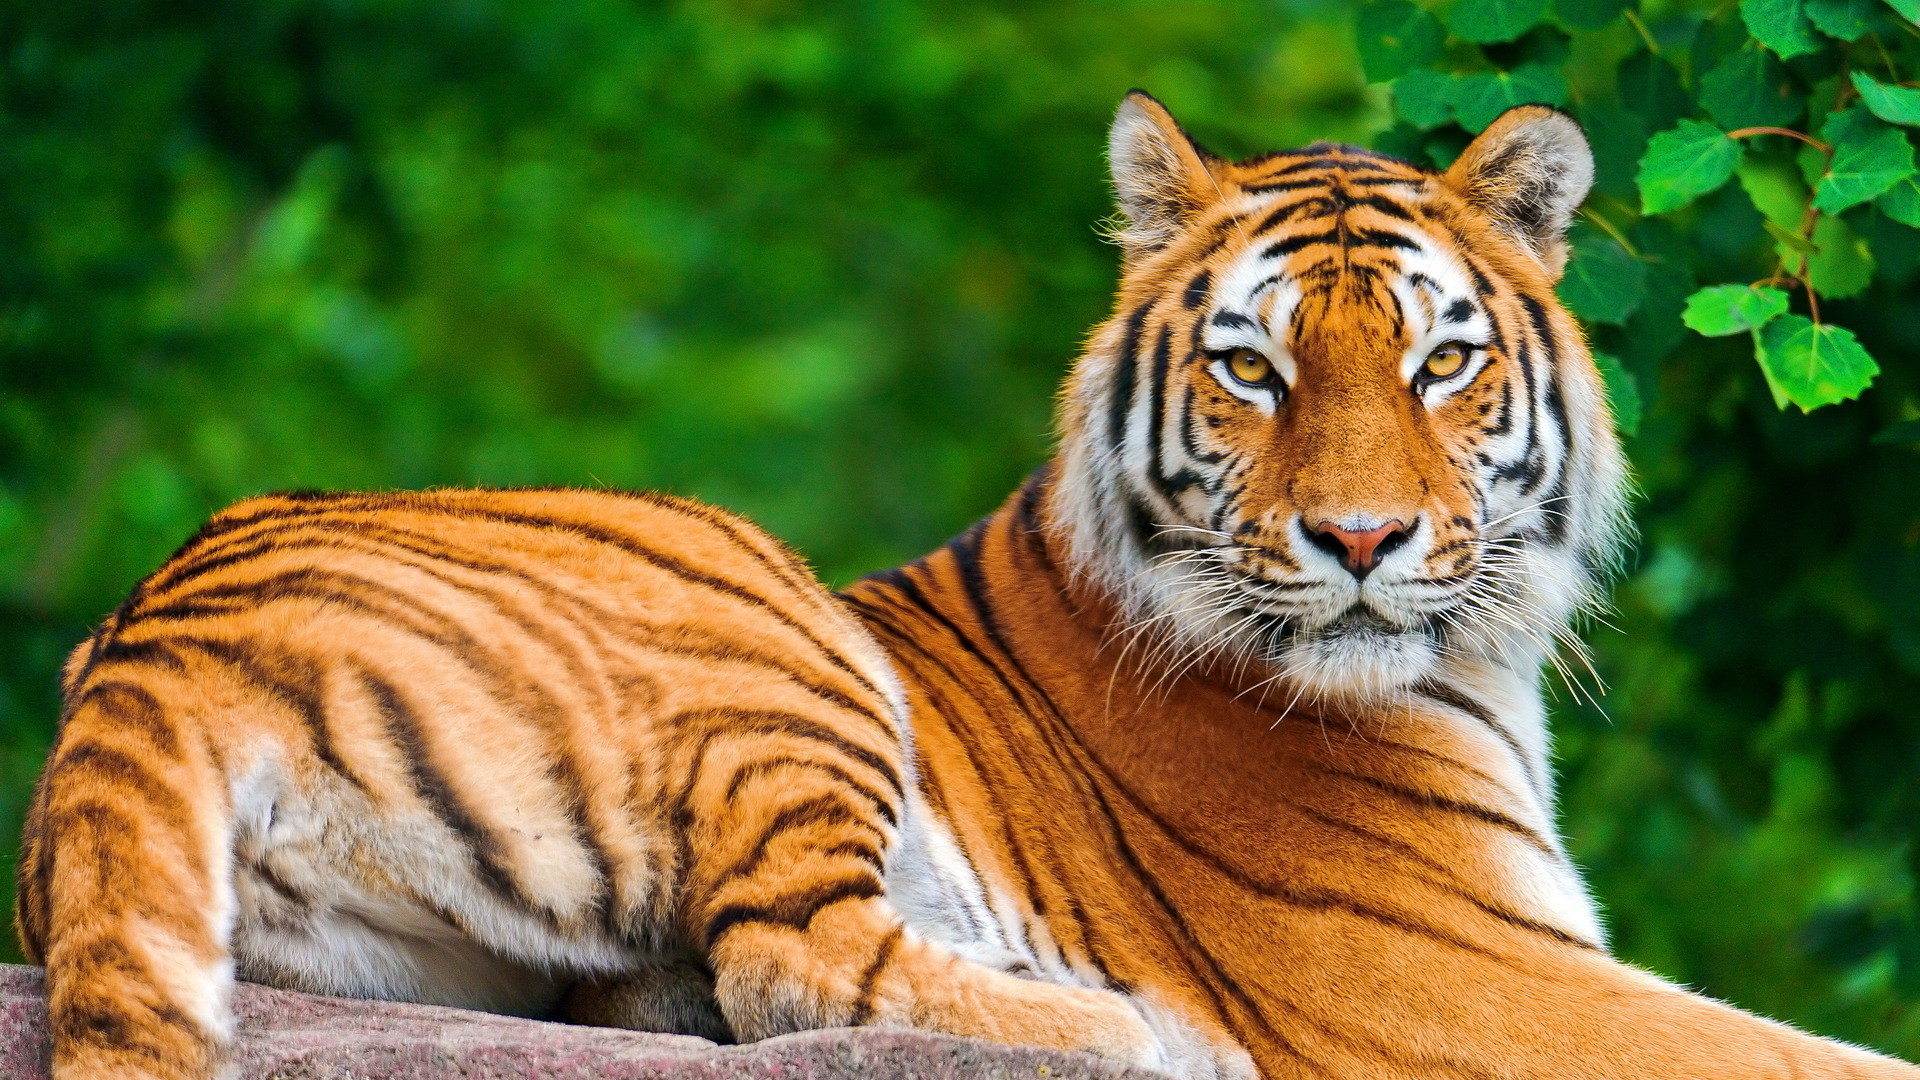 Download free Tiger Wallpapers. Amazing collection of full screen Tiger HD  Wallpapers at 2880×1800,